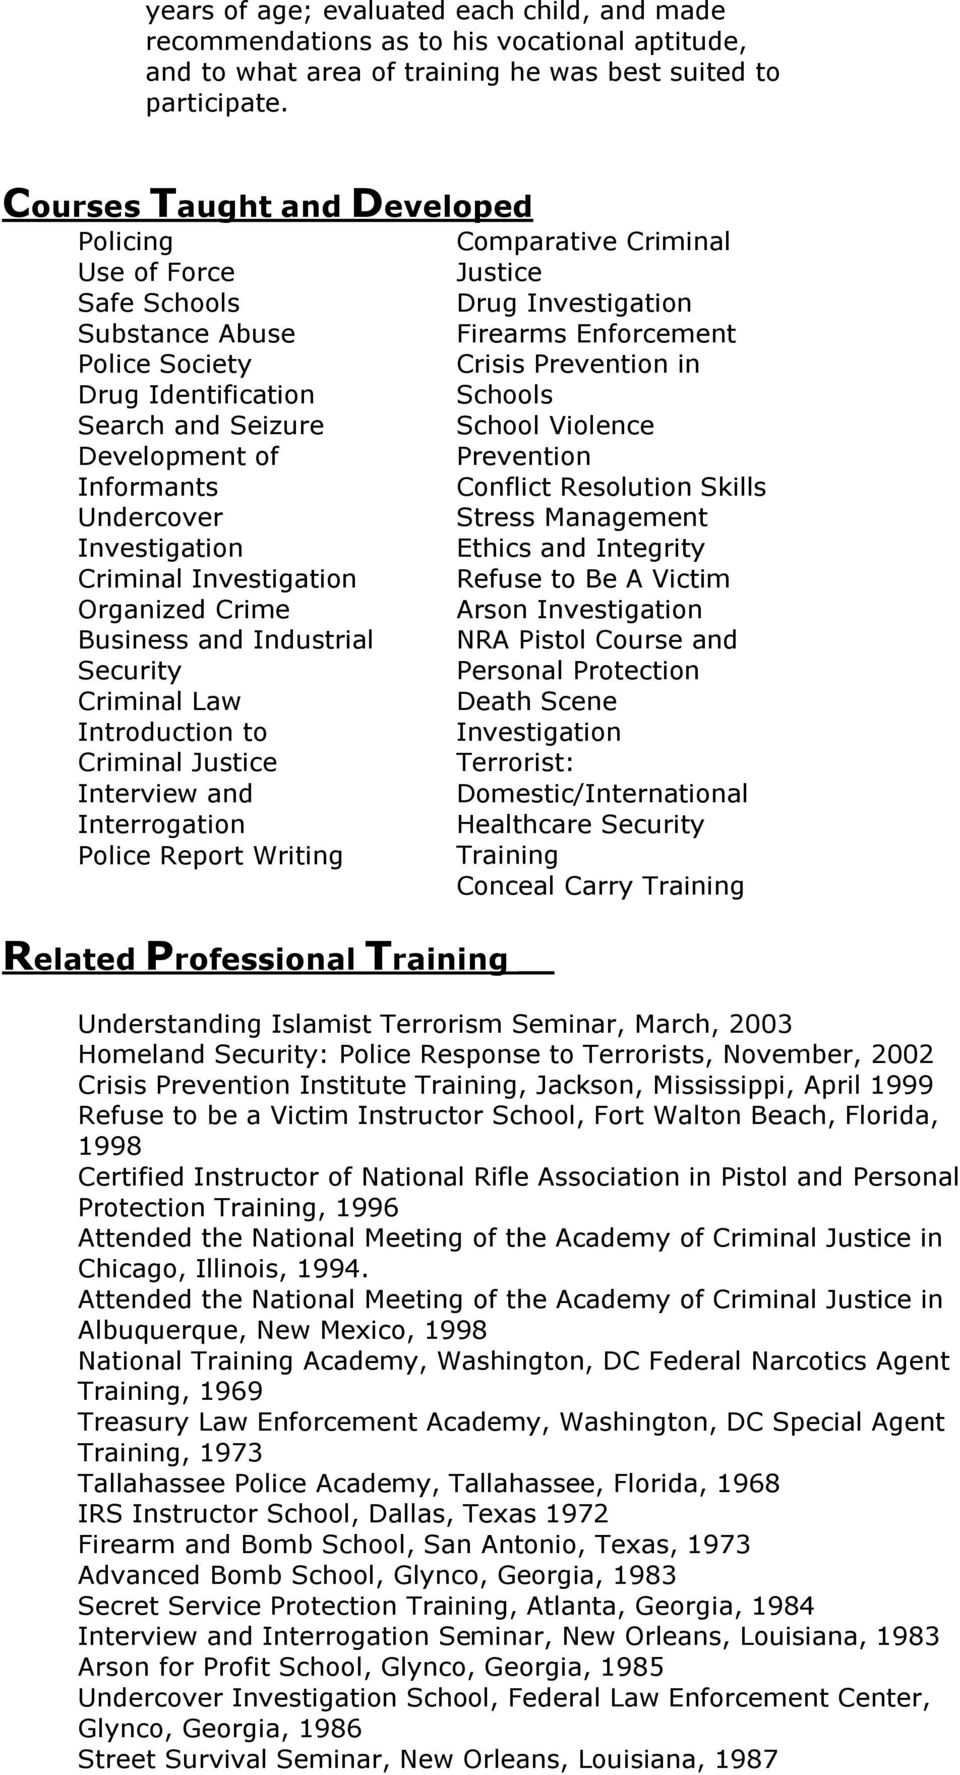 Identification Schools Search and Seizure School Violence Development of Prevention Informants Conflict Resolution Skills Undercover Stress Management Investigation Ethics and Integrity Criminal